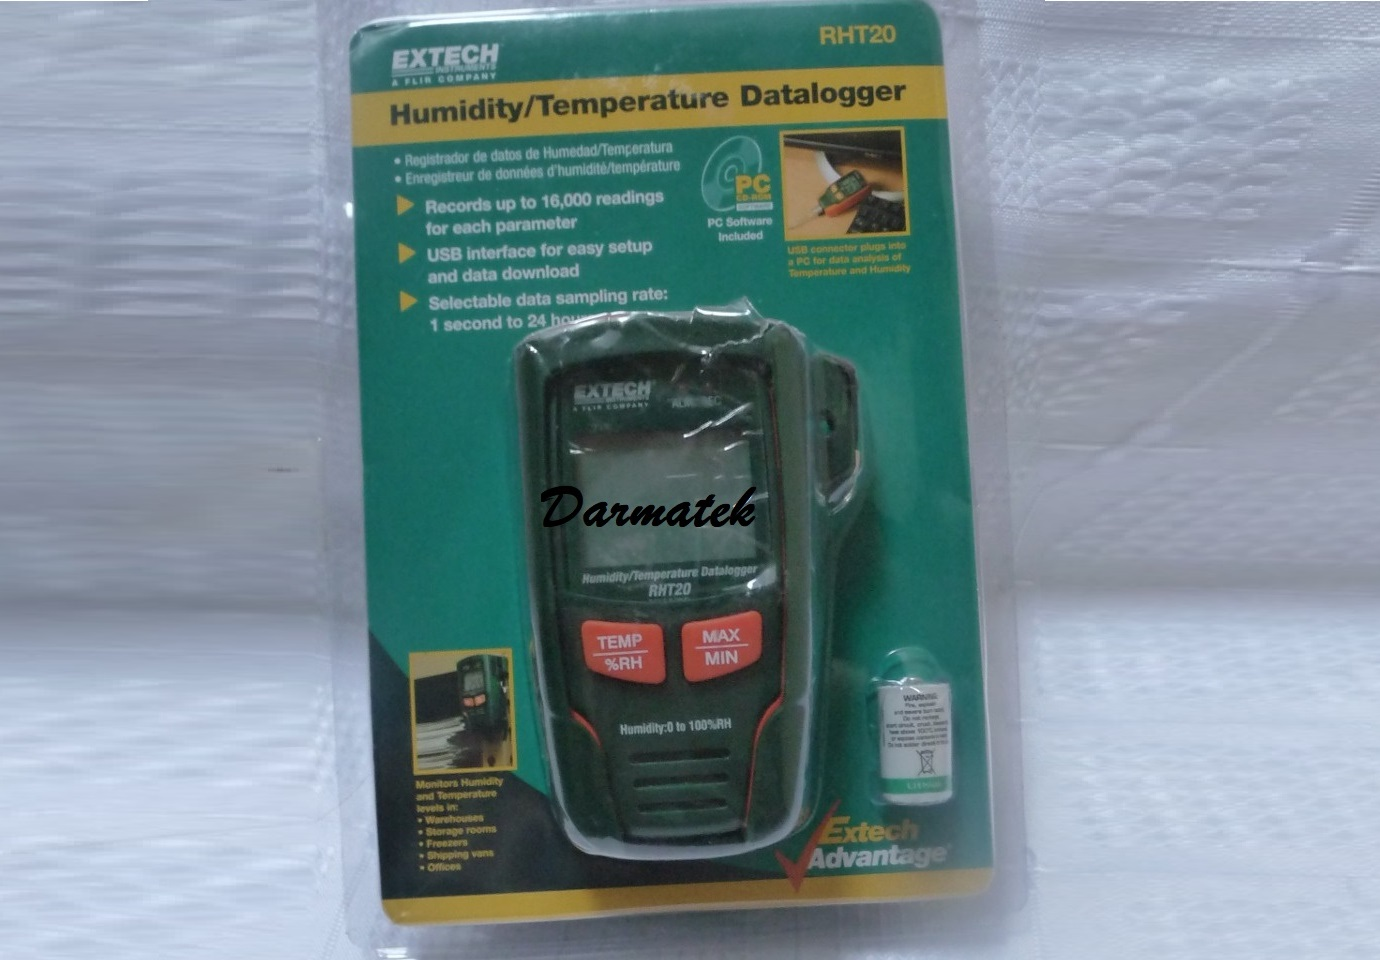 Jual Extech RHT20 , Humidity and Temperature Datalogger (LCD)